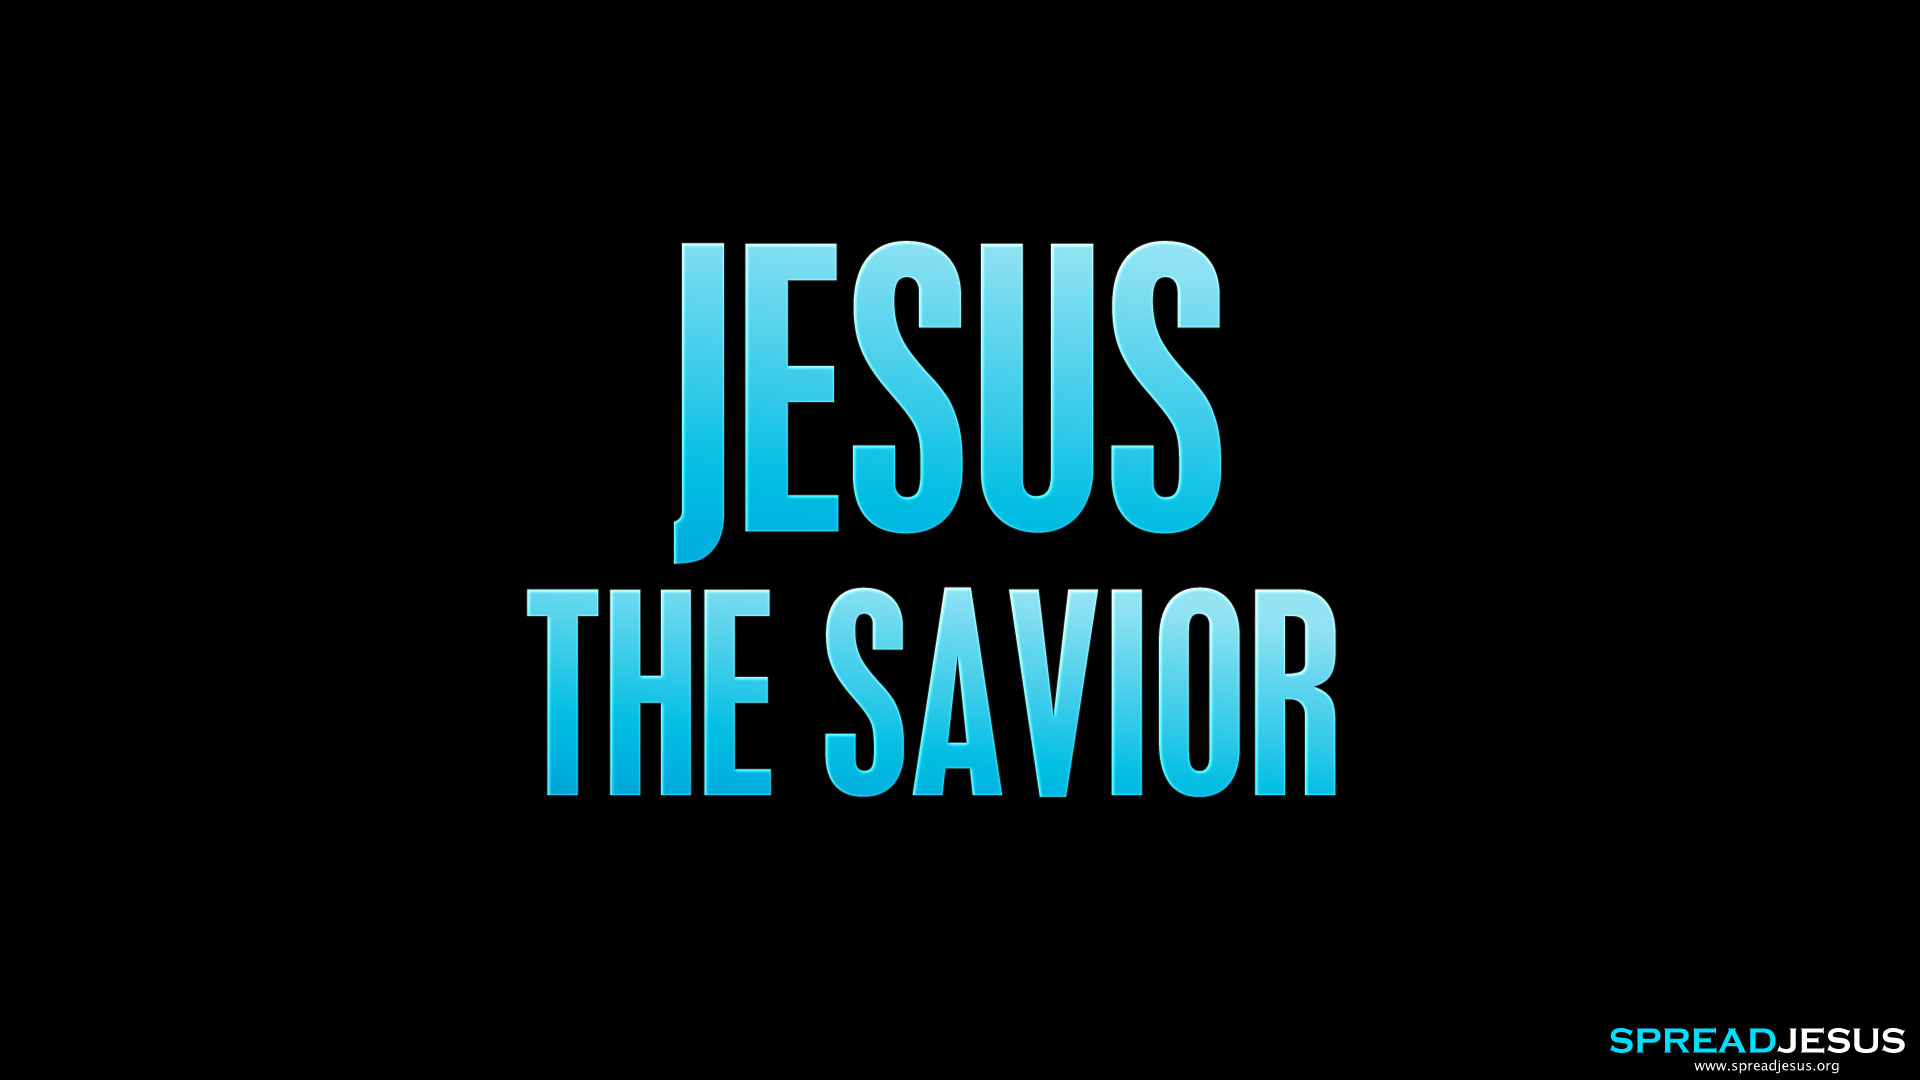 Jesus Christ HD wallpapers free download:Jesus The Savior Jesus Christ HD wallpaper 4 free download:Jesus christ Backgrounds ,christian backgrounds wallpapers HD